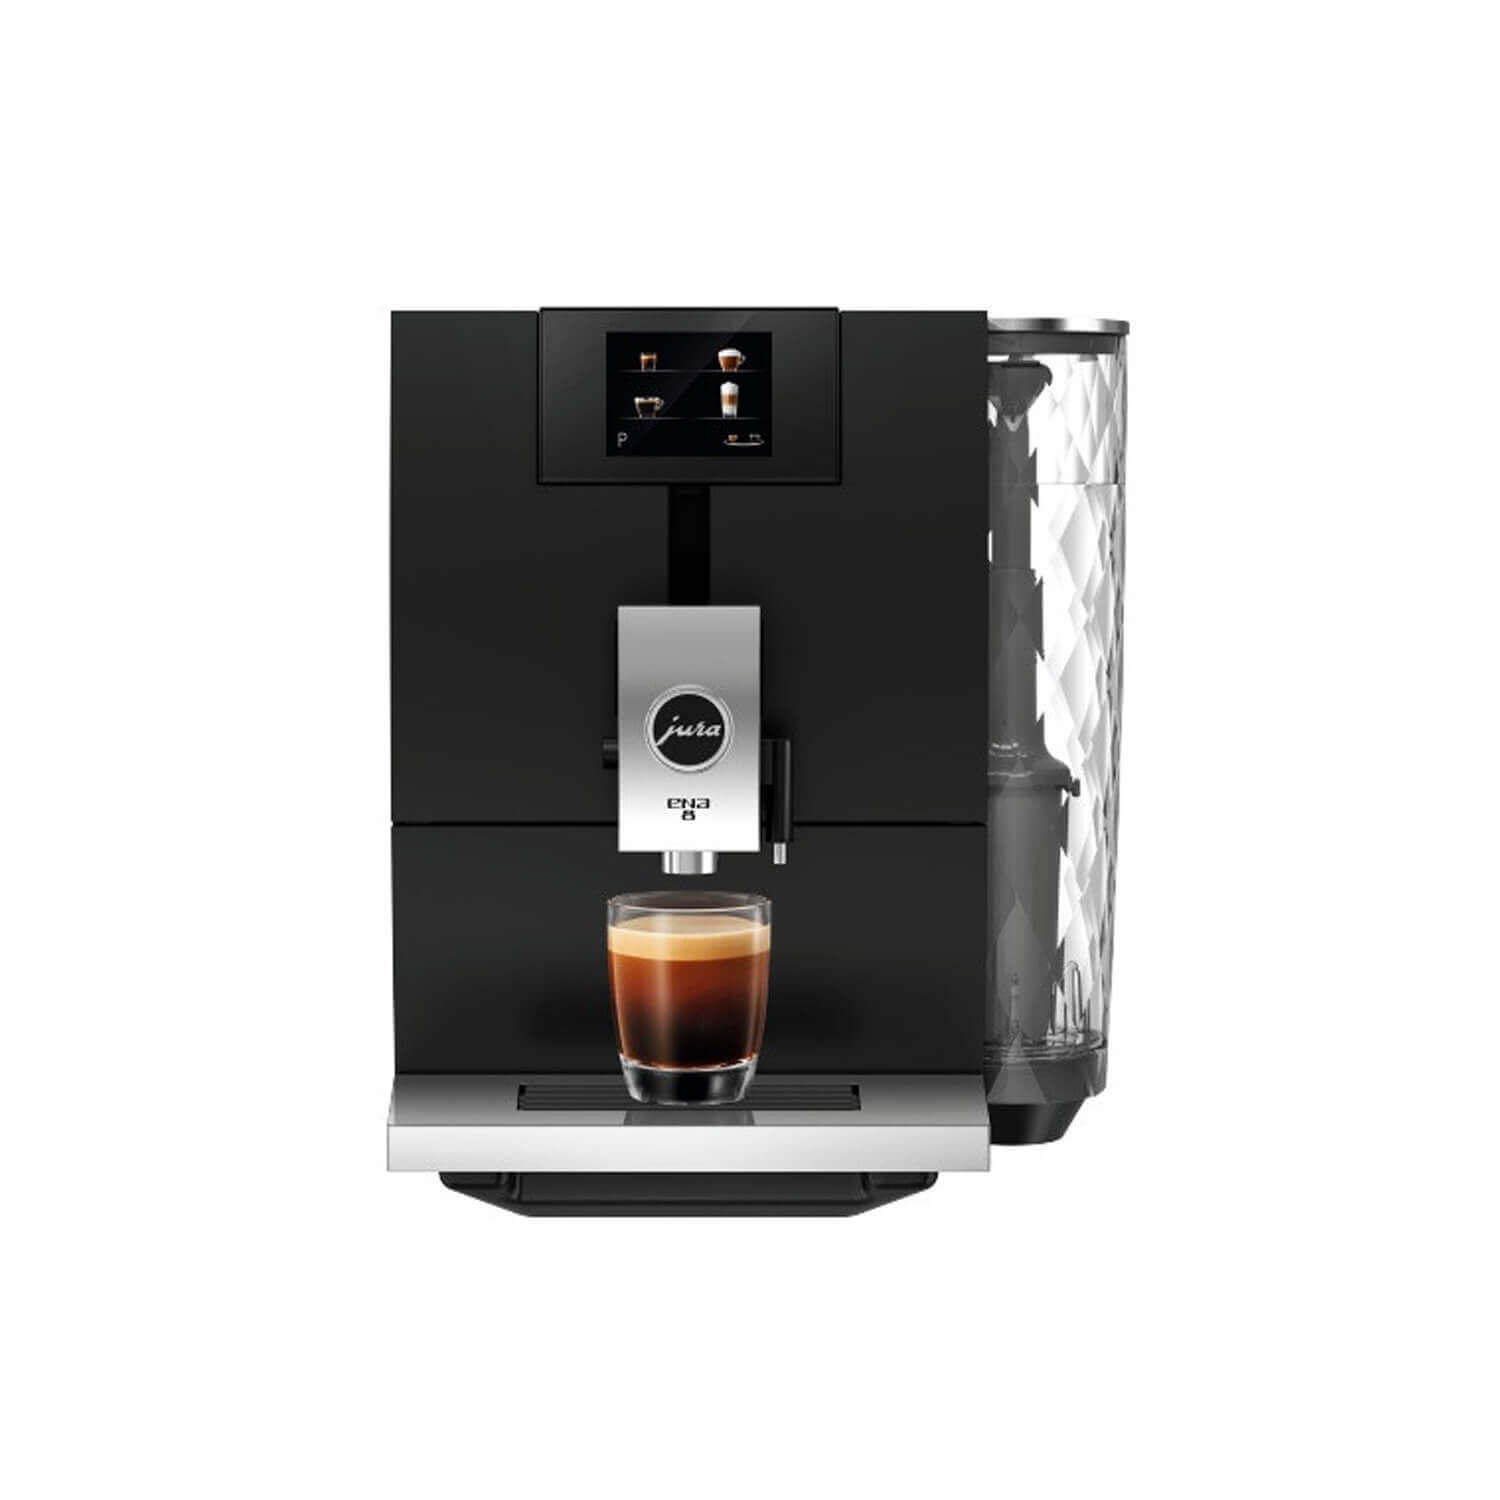 Jura - Ena 8 - Full Metropolitan Black Touch